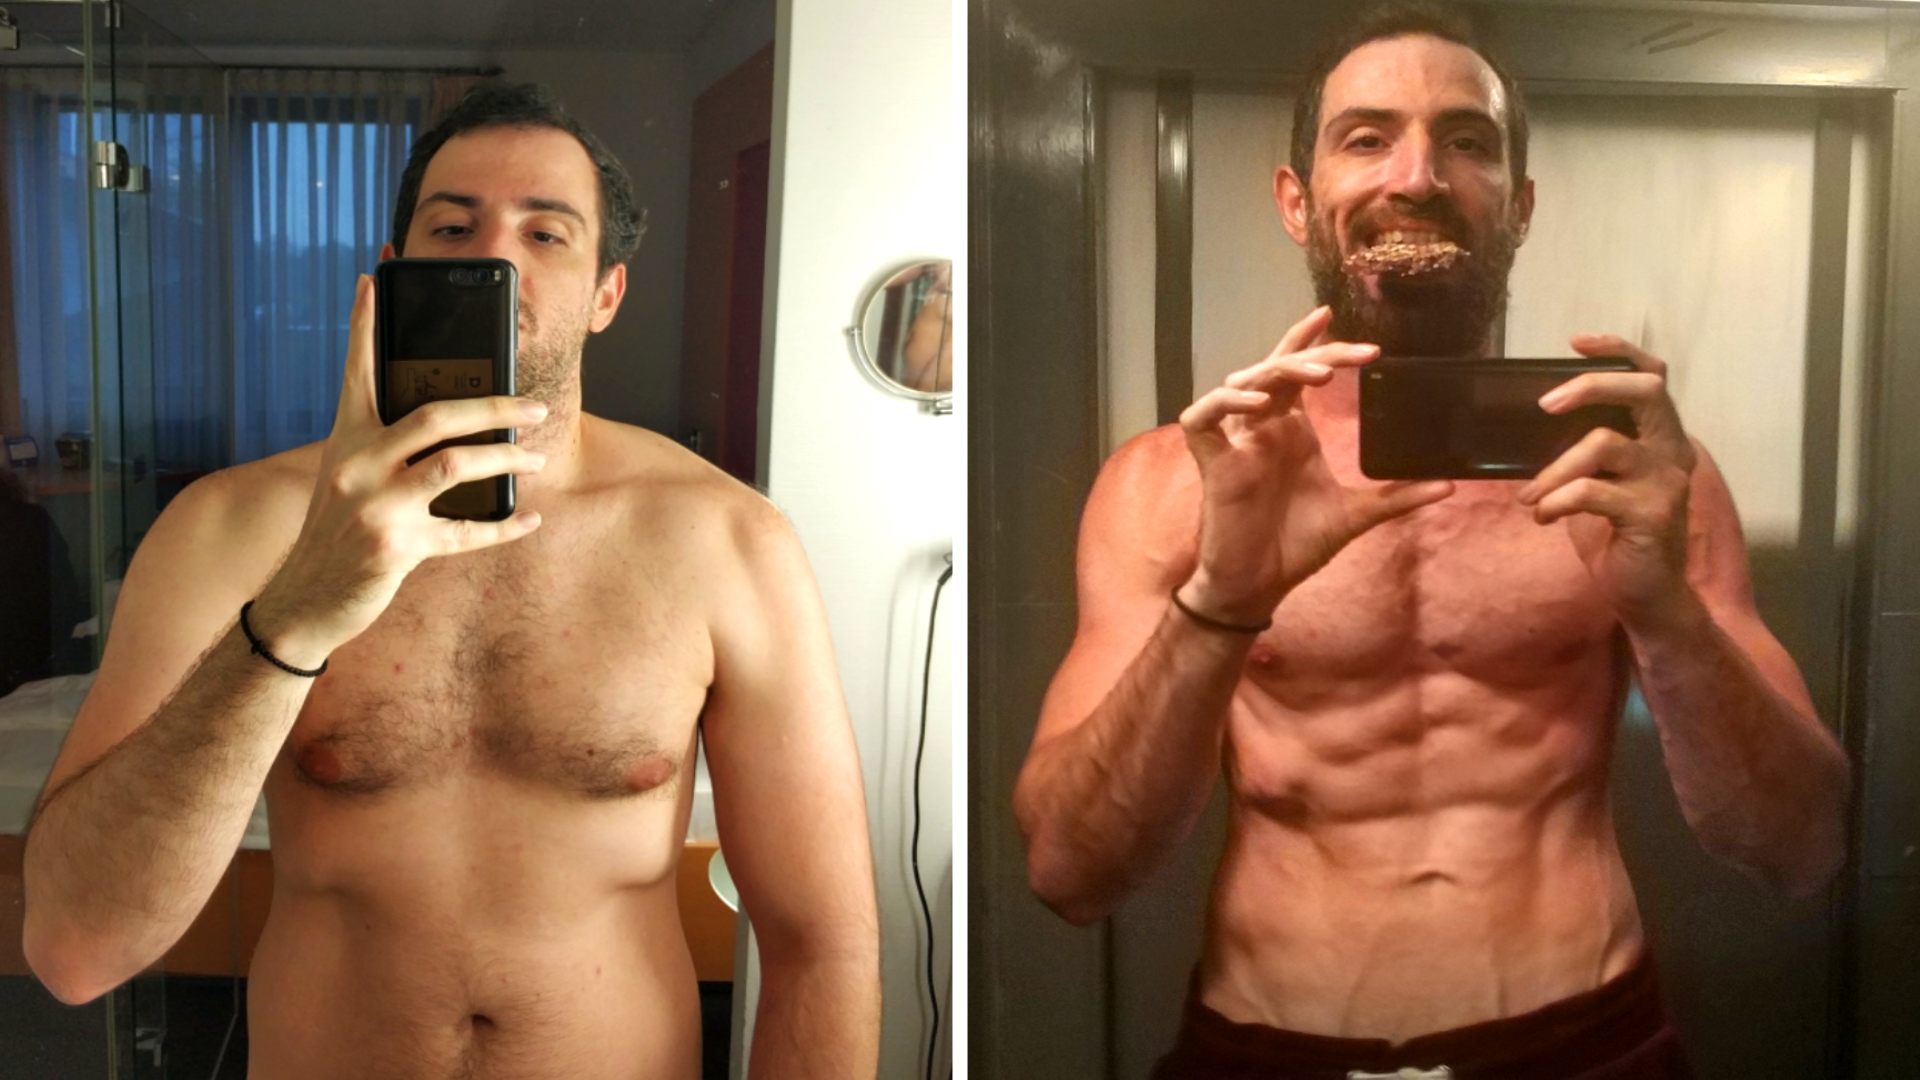 [Image] Hello Reddit, 2021 just started so I would like to share with you my transformation during the previous year, I hope to motivate others to follow their goals.